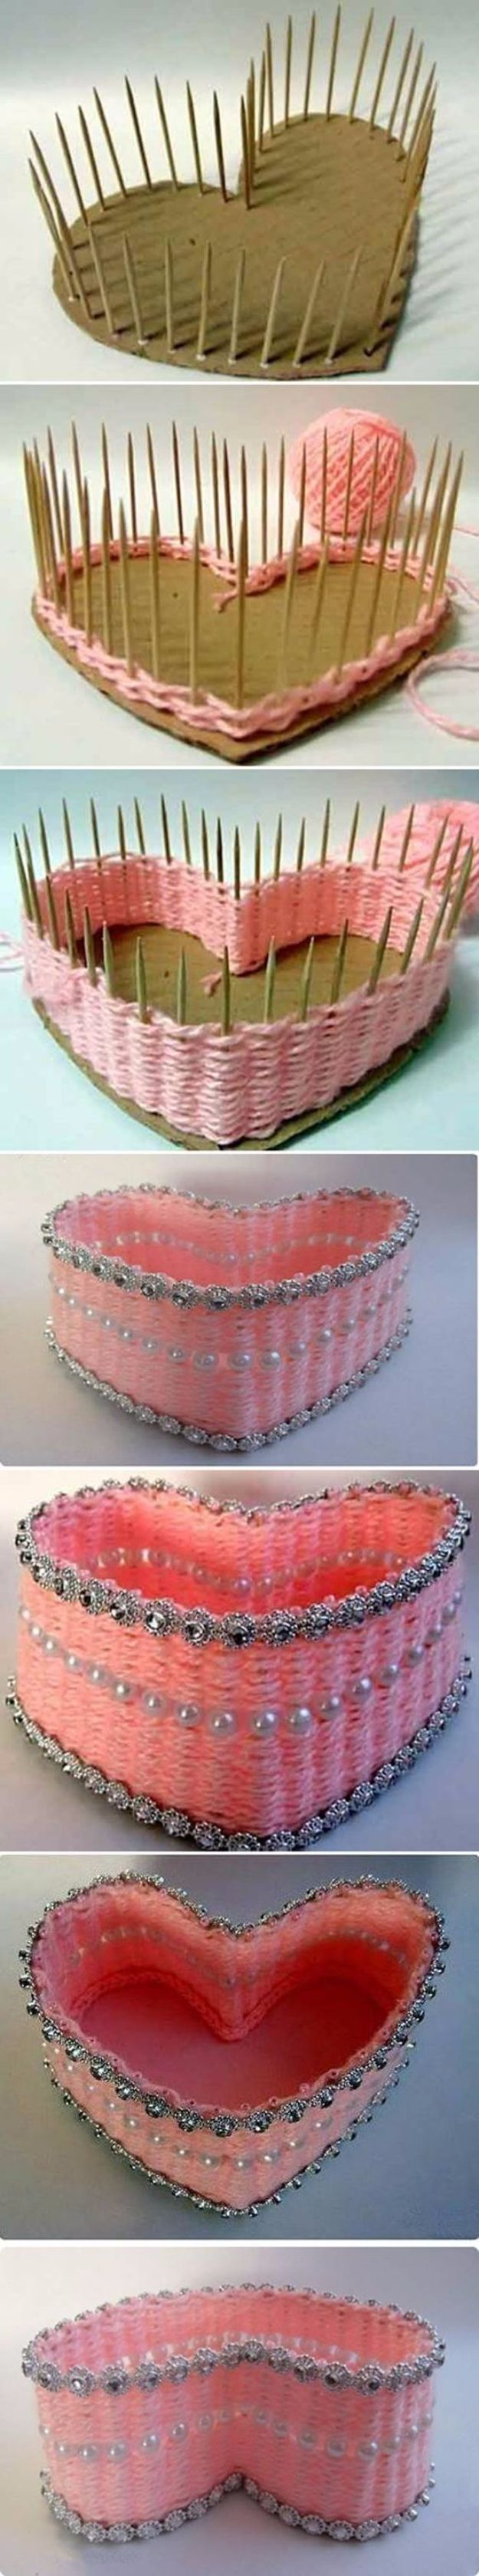 Photo of 31 DIY Crafts Made With Baskets